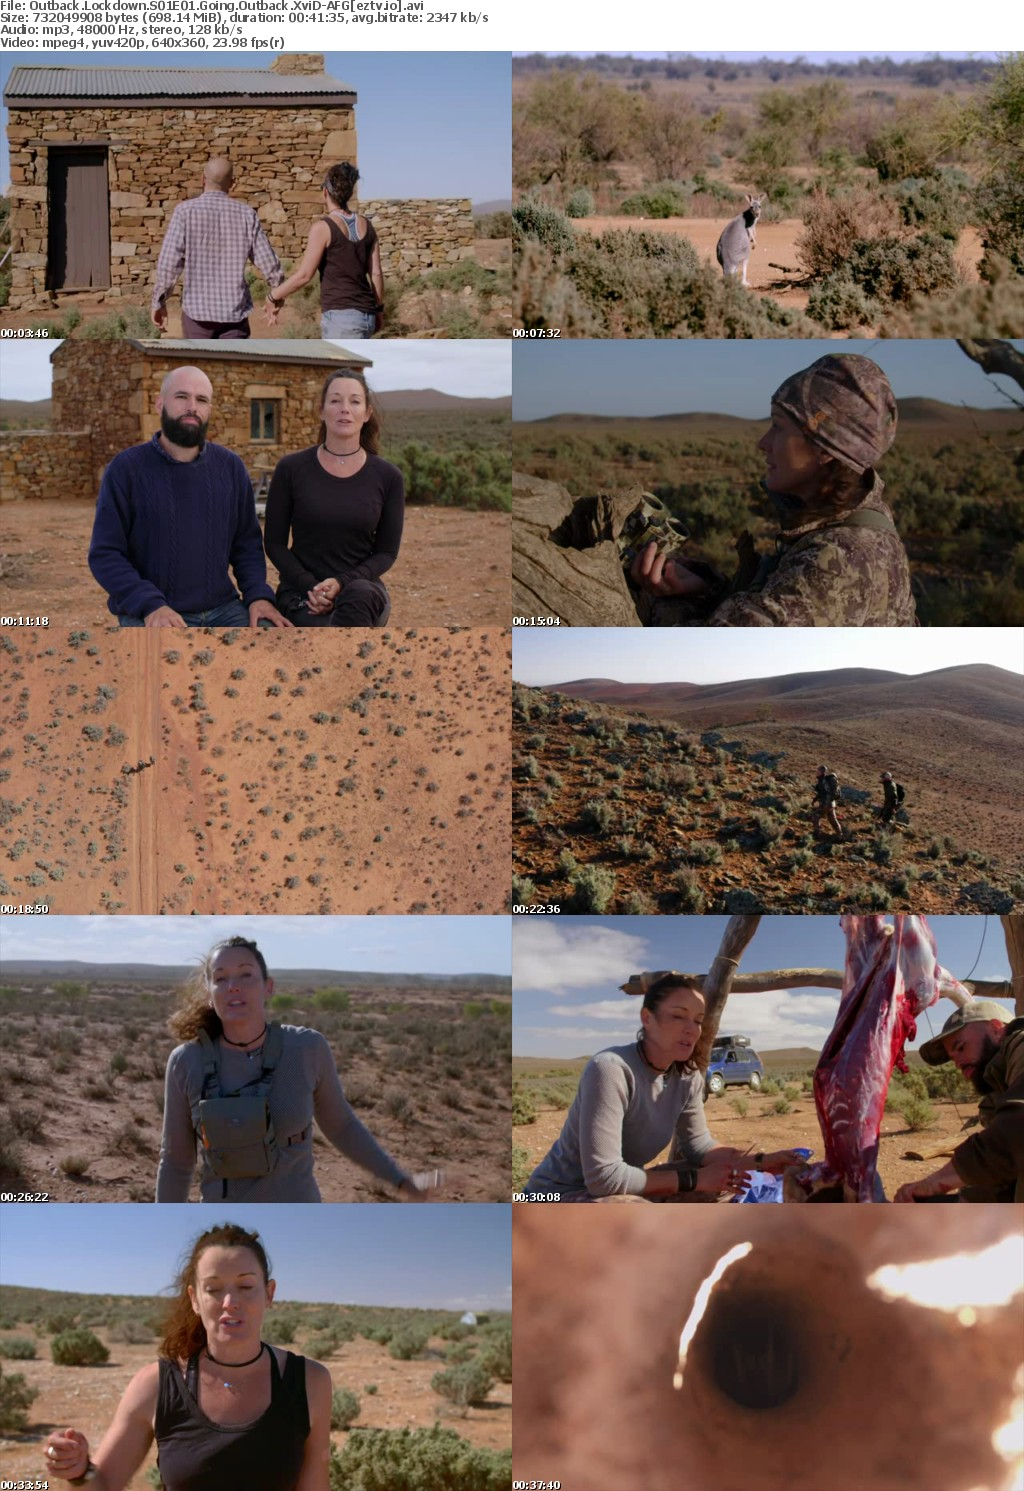 Outback Lockdown S01E01 Going Outback XviD-AFG